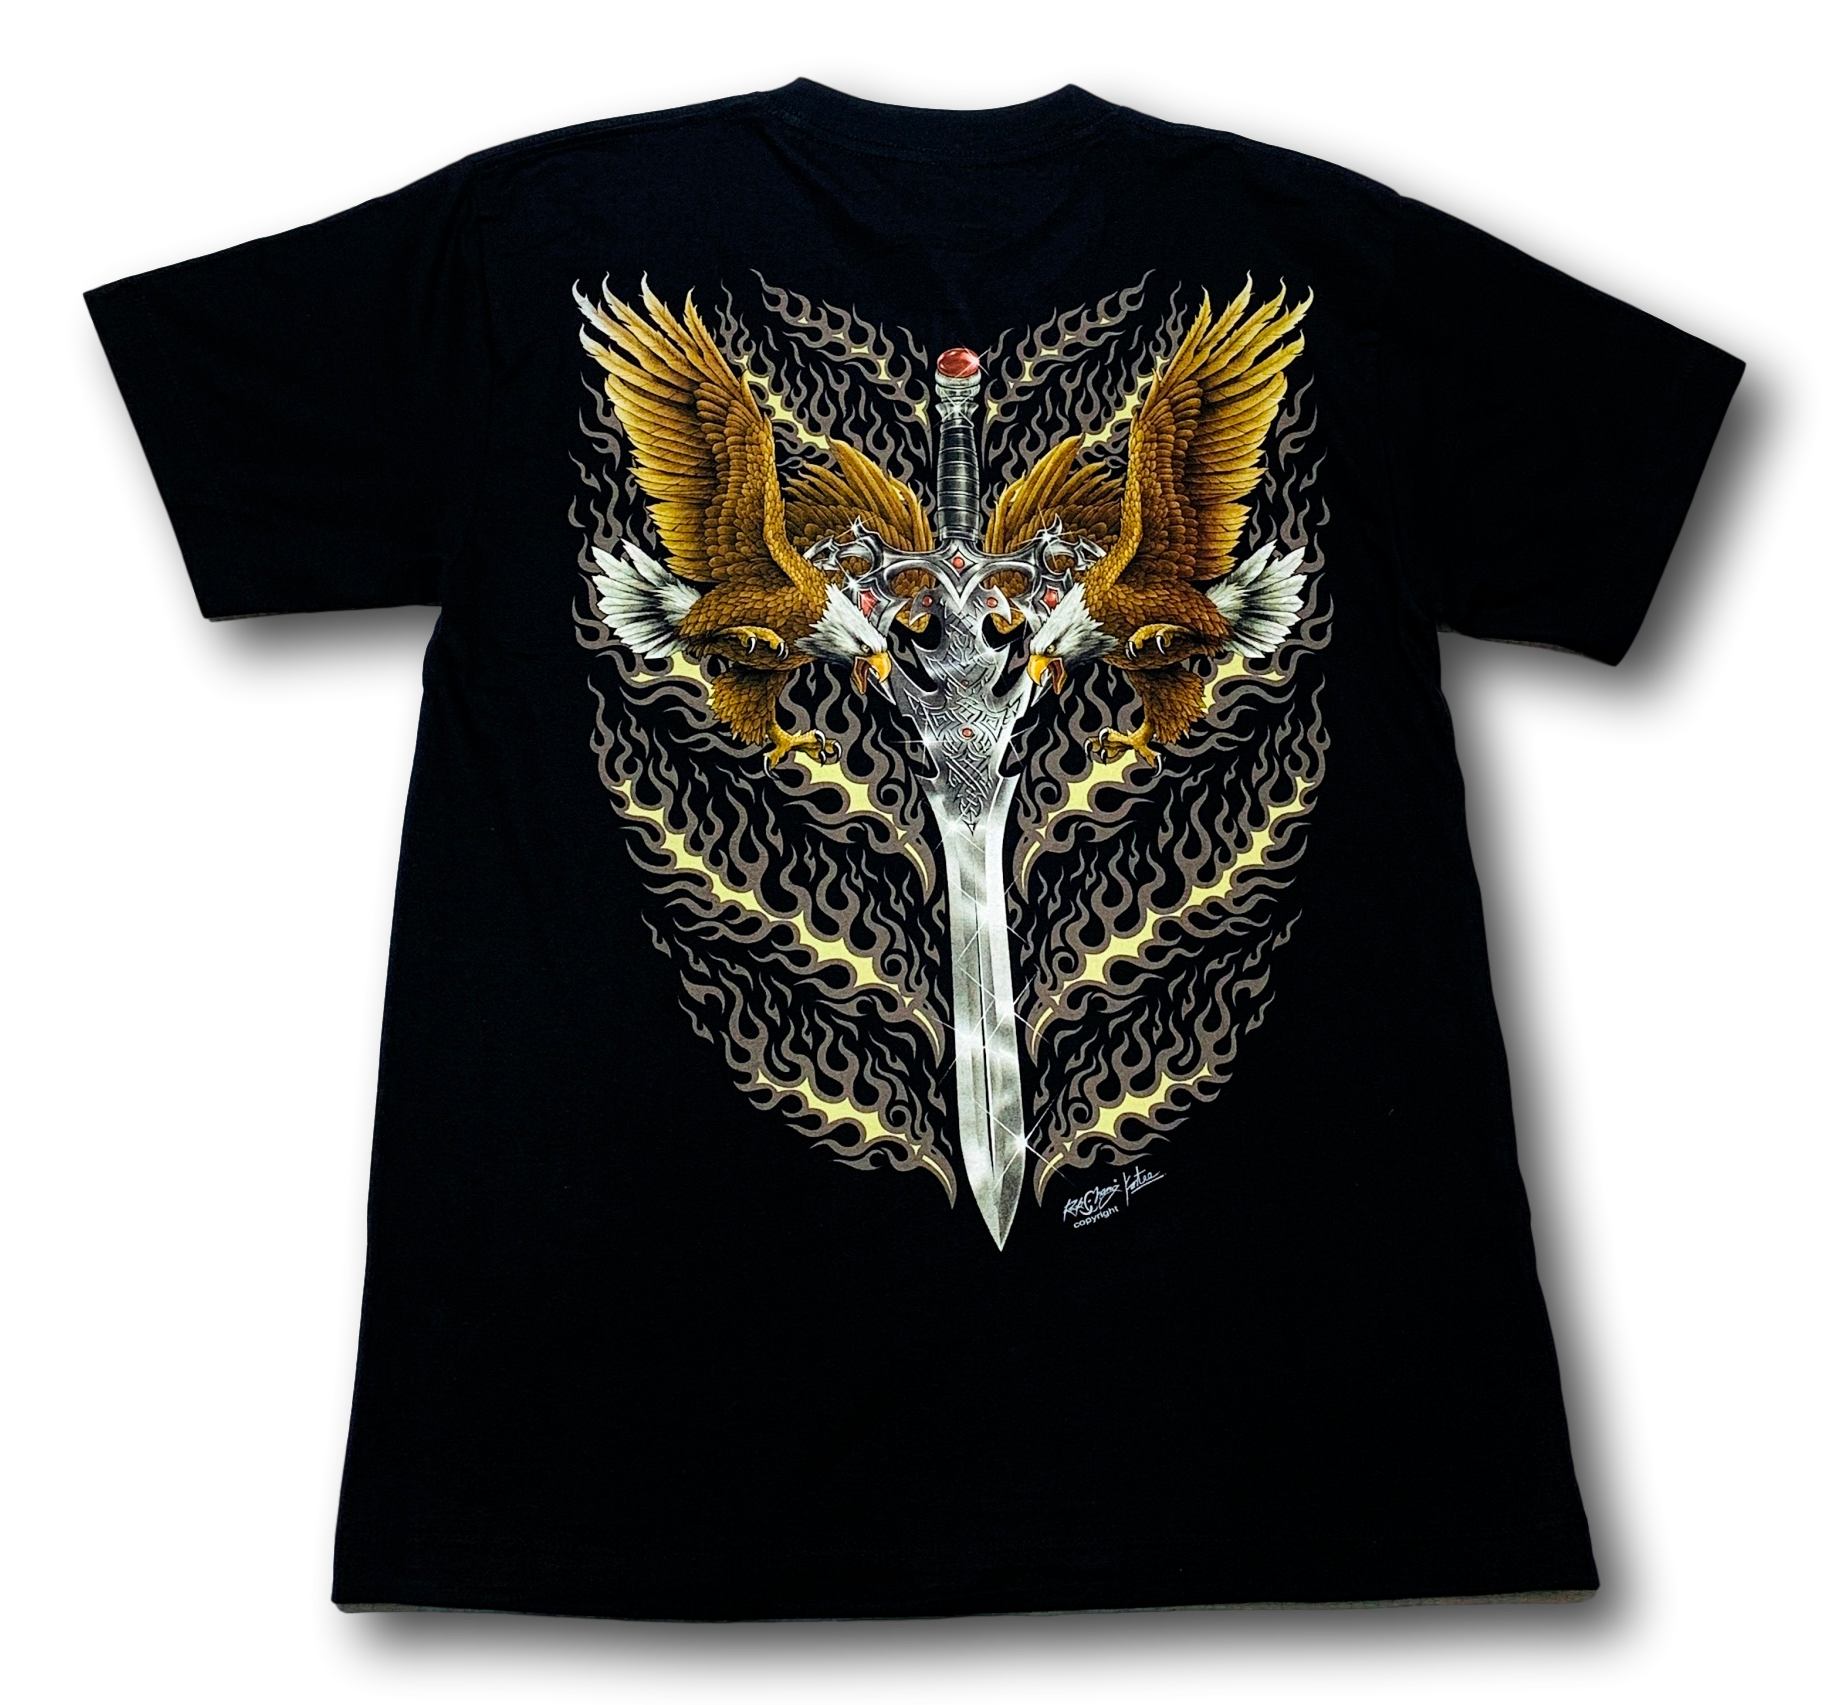 Two Eagles and Sword Rock Chang T-Shirt